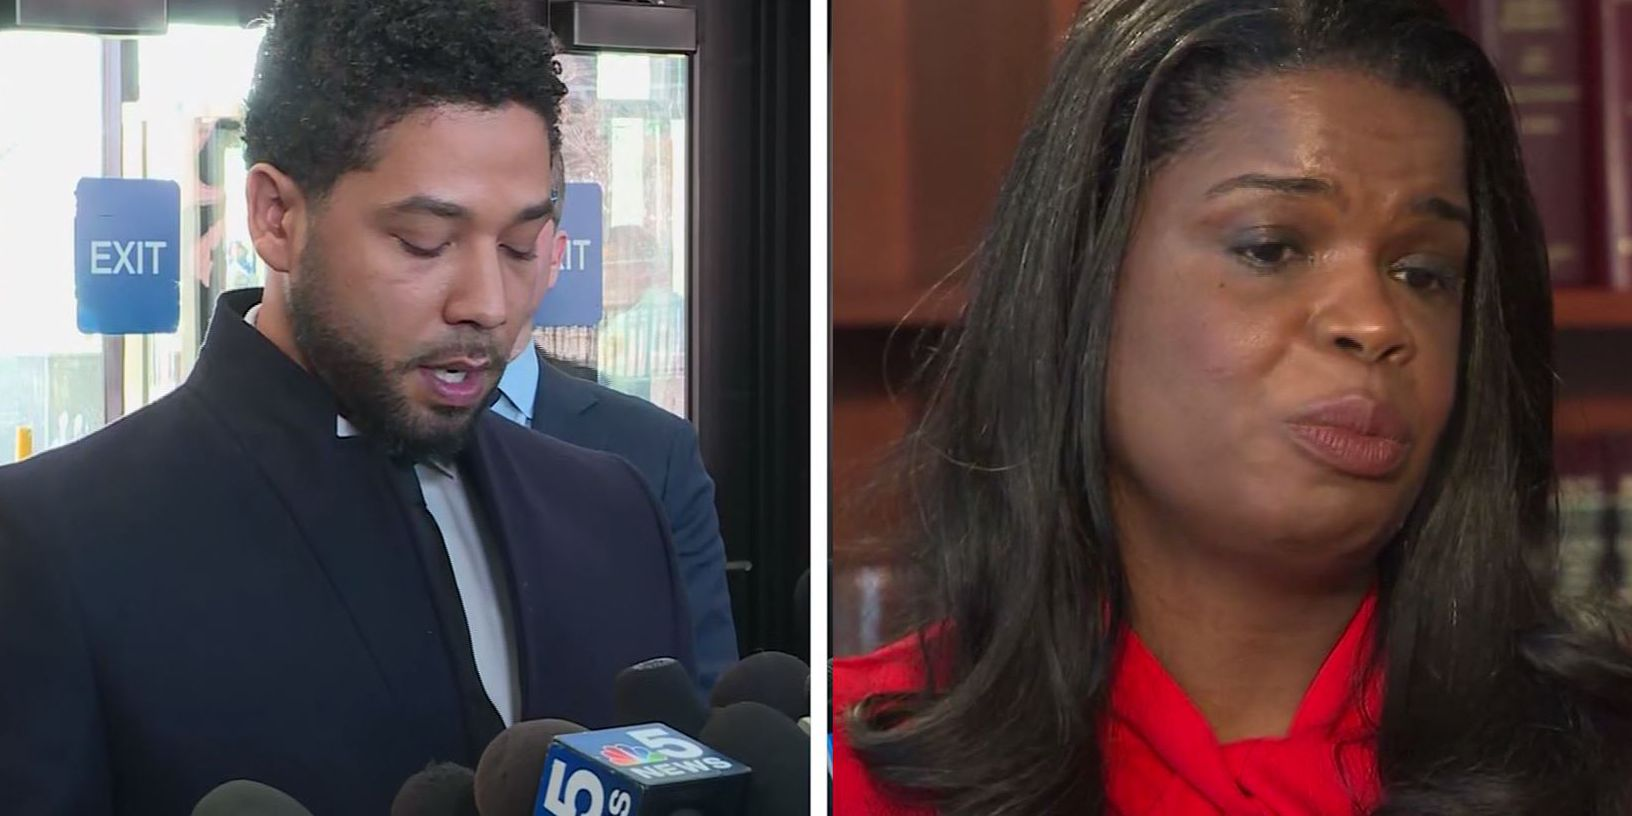 Jussie Smollett case: Prosecutor questioned overcharging 'washed up celeb'